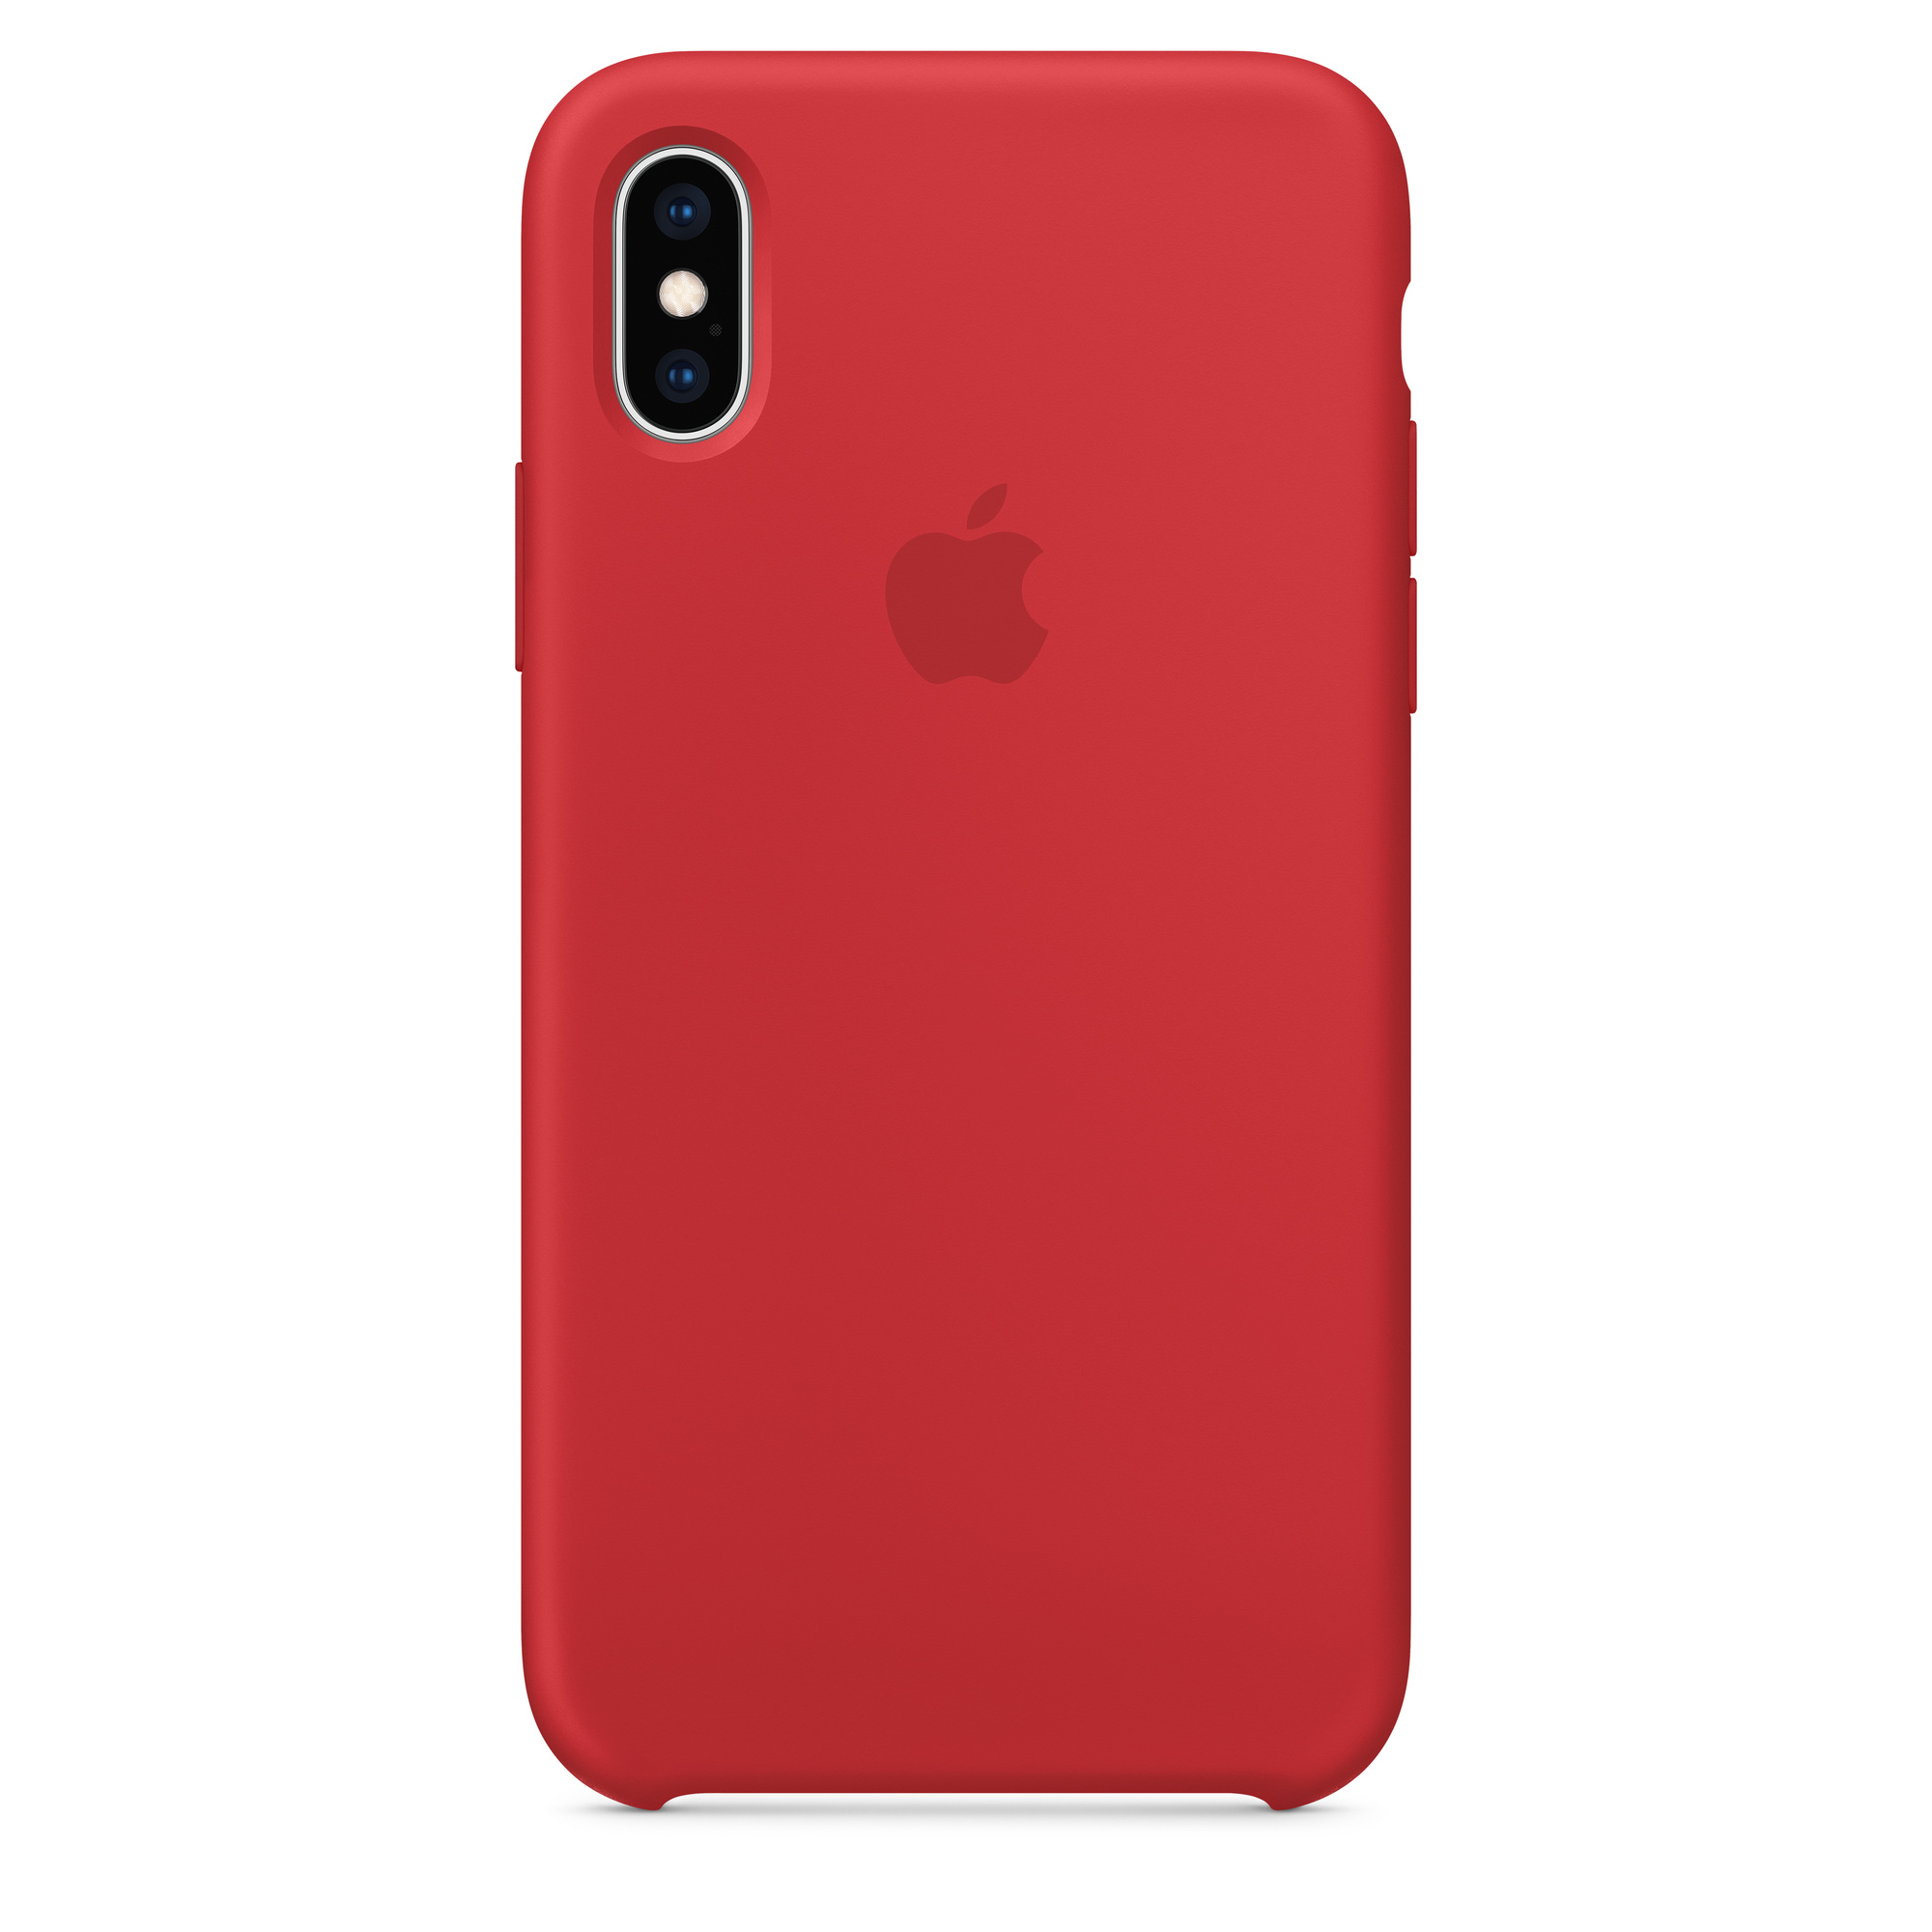 finest selection 18335 bde01 iPhone XS Silicone Case - (PRODUCT)RED